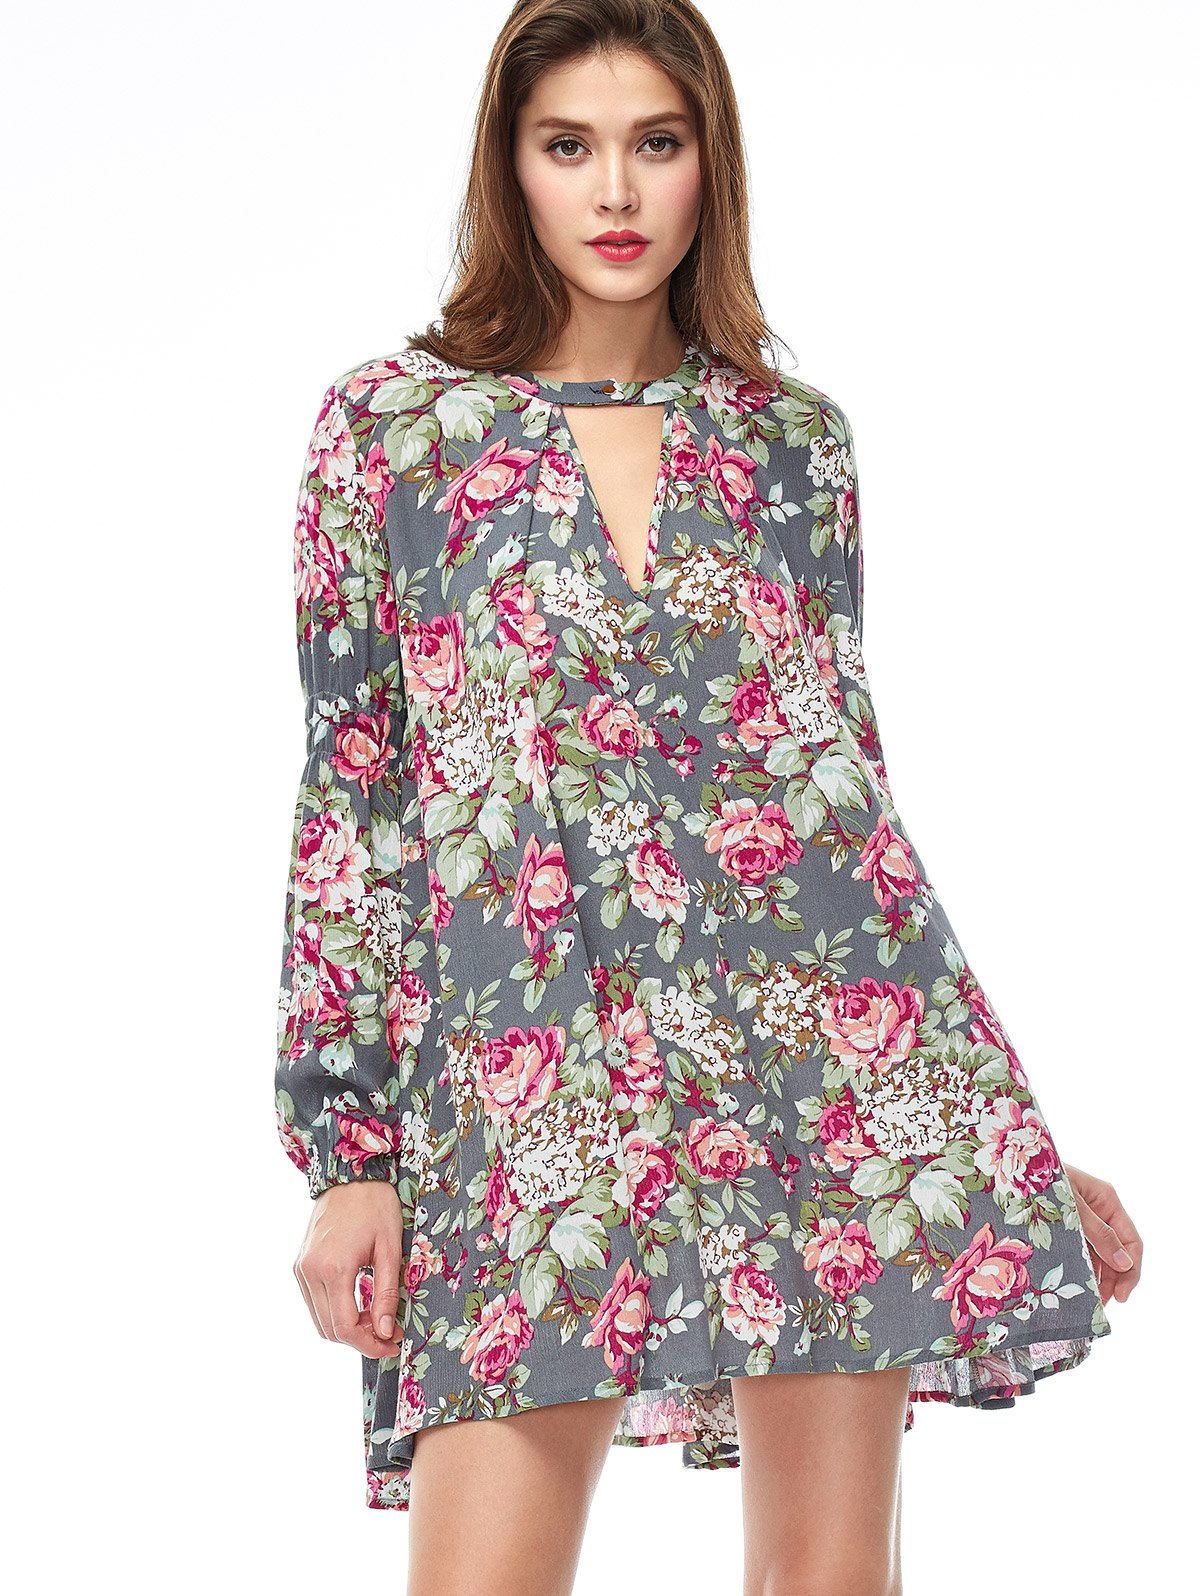 Keyhole Cutout Floral Swing Dress